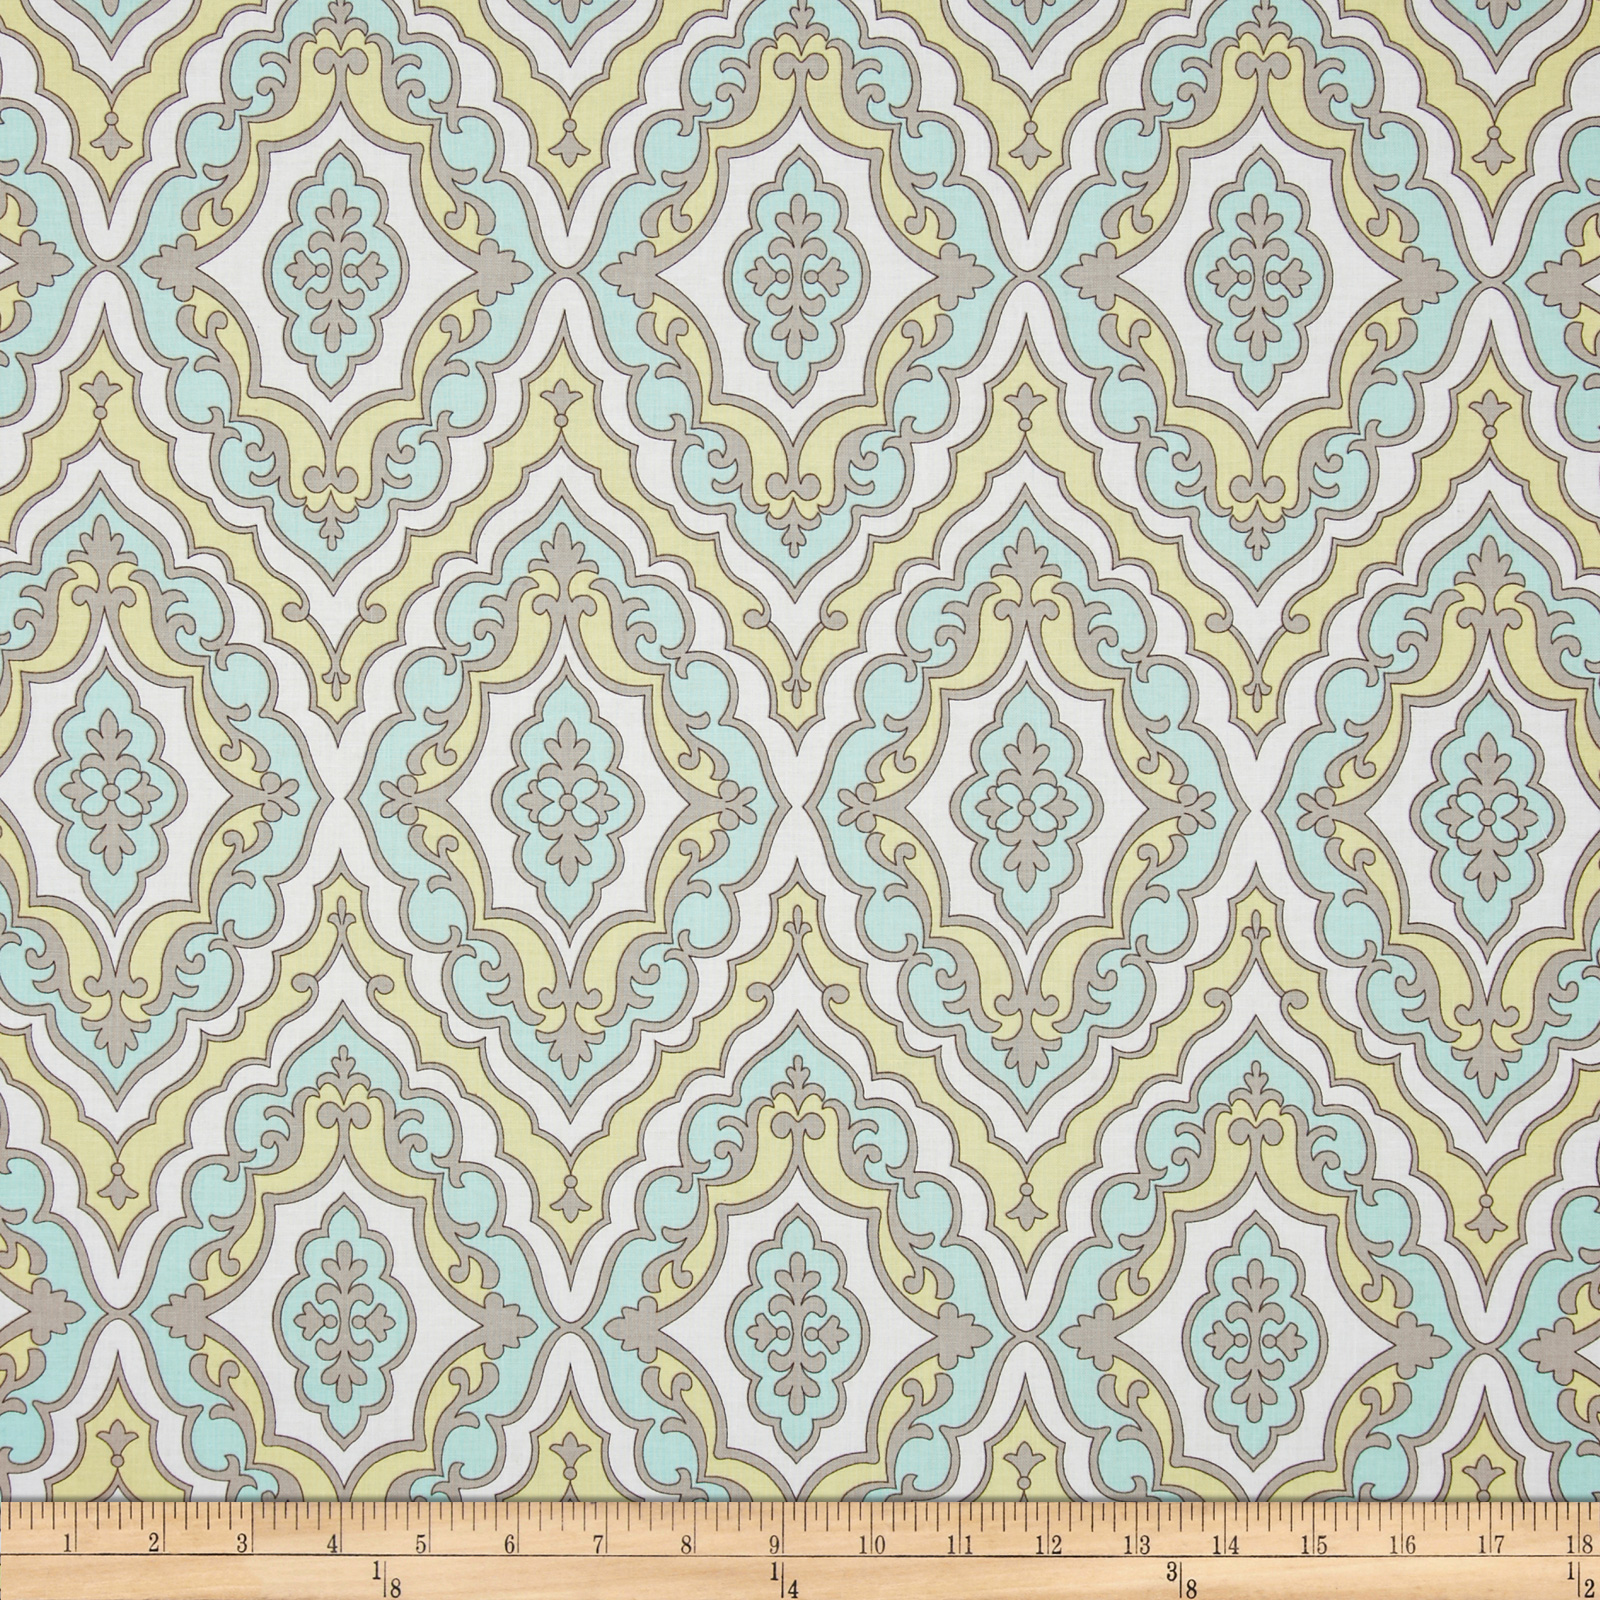 Michael Miller Daydream Girl's Best Friend Aqua Fabric